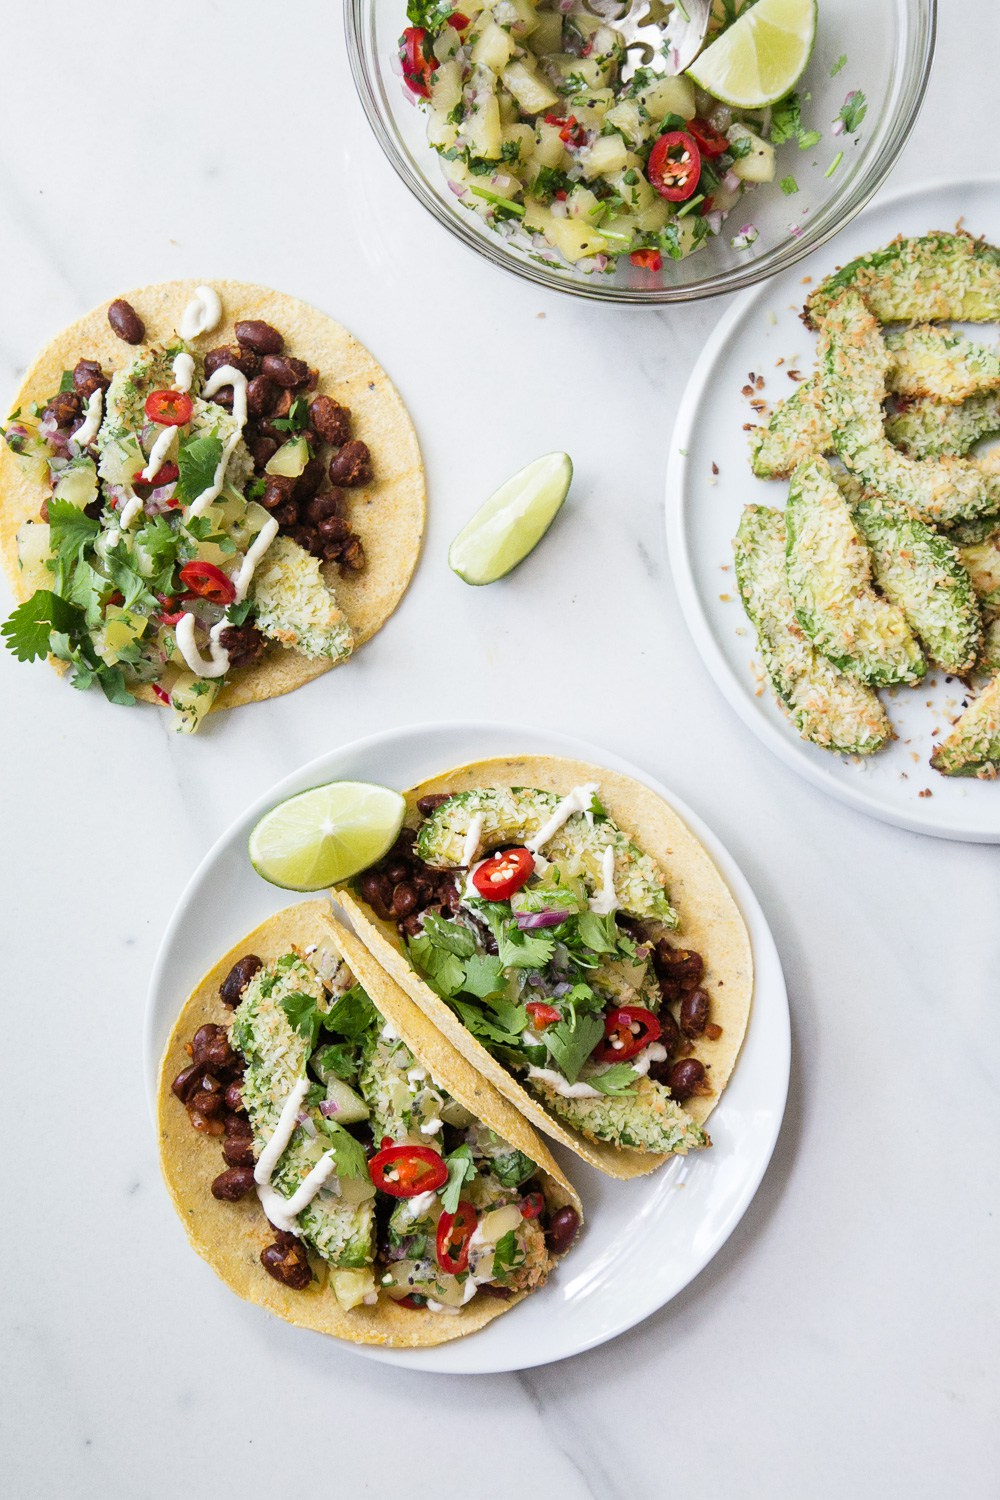 coconut-crusted-avocado-bean-tacos-kiwi-salsa-12.jpg